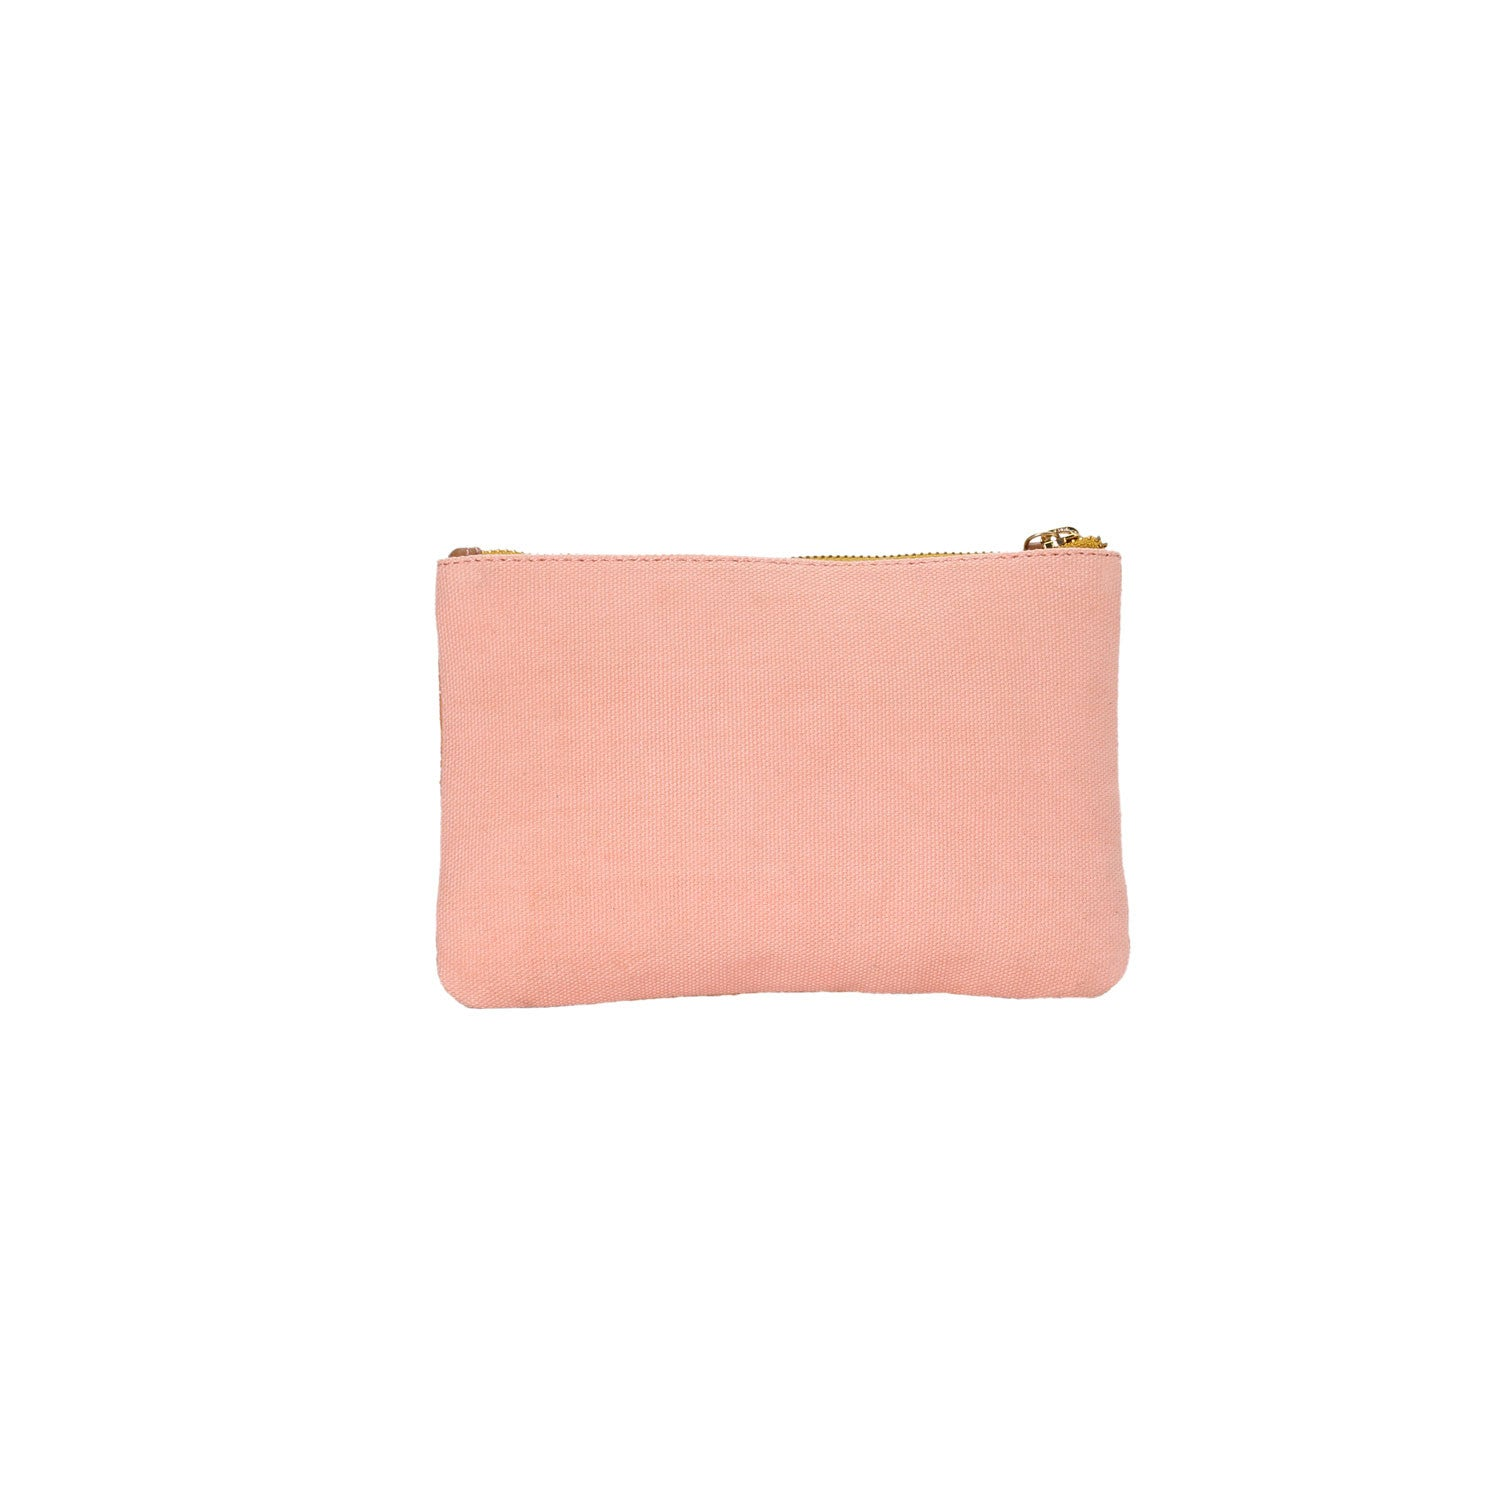 SS16 All Dolled Up Cosmetic Purse